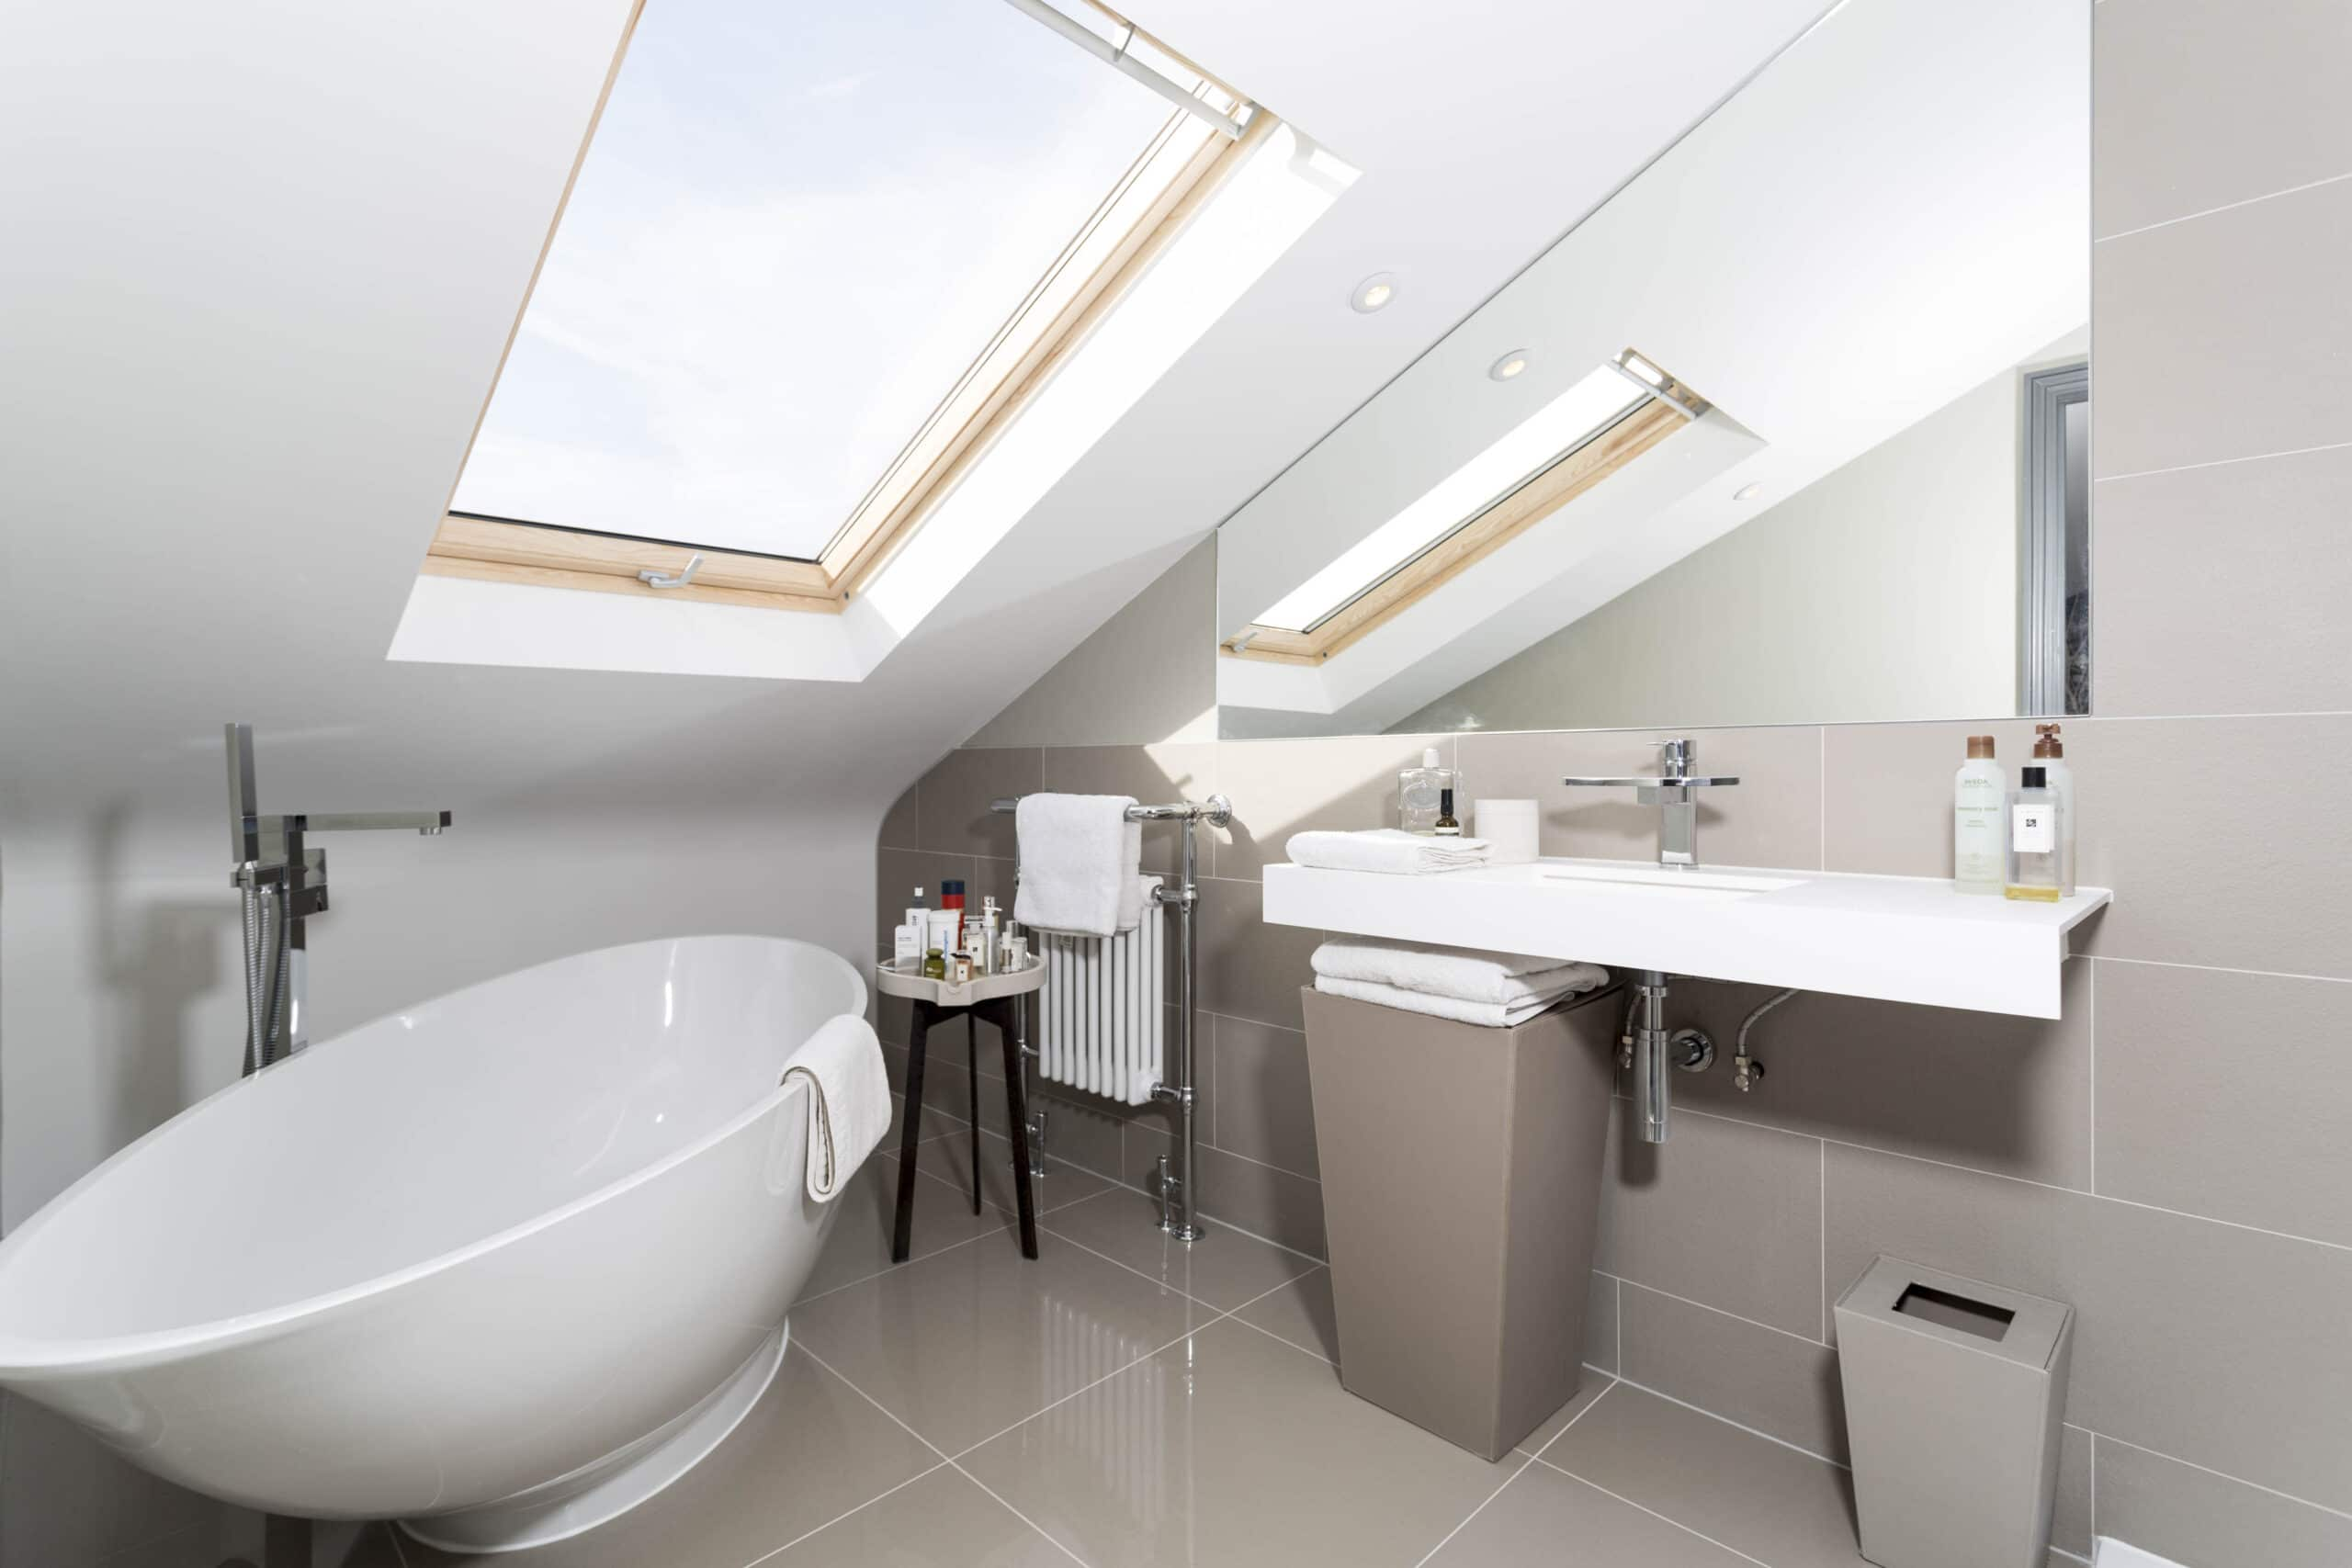 Ensuite Bathroom Ideas Uk making the most of a small bathroom in a loft | simply loft